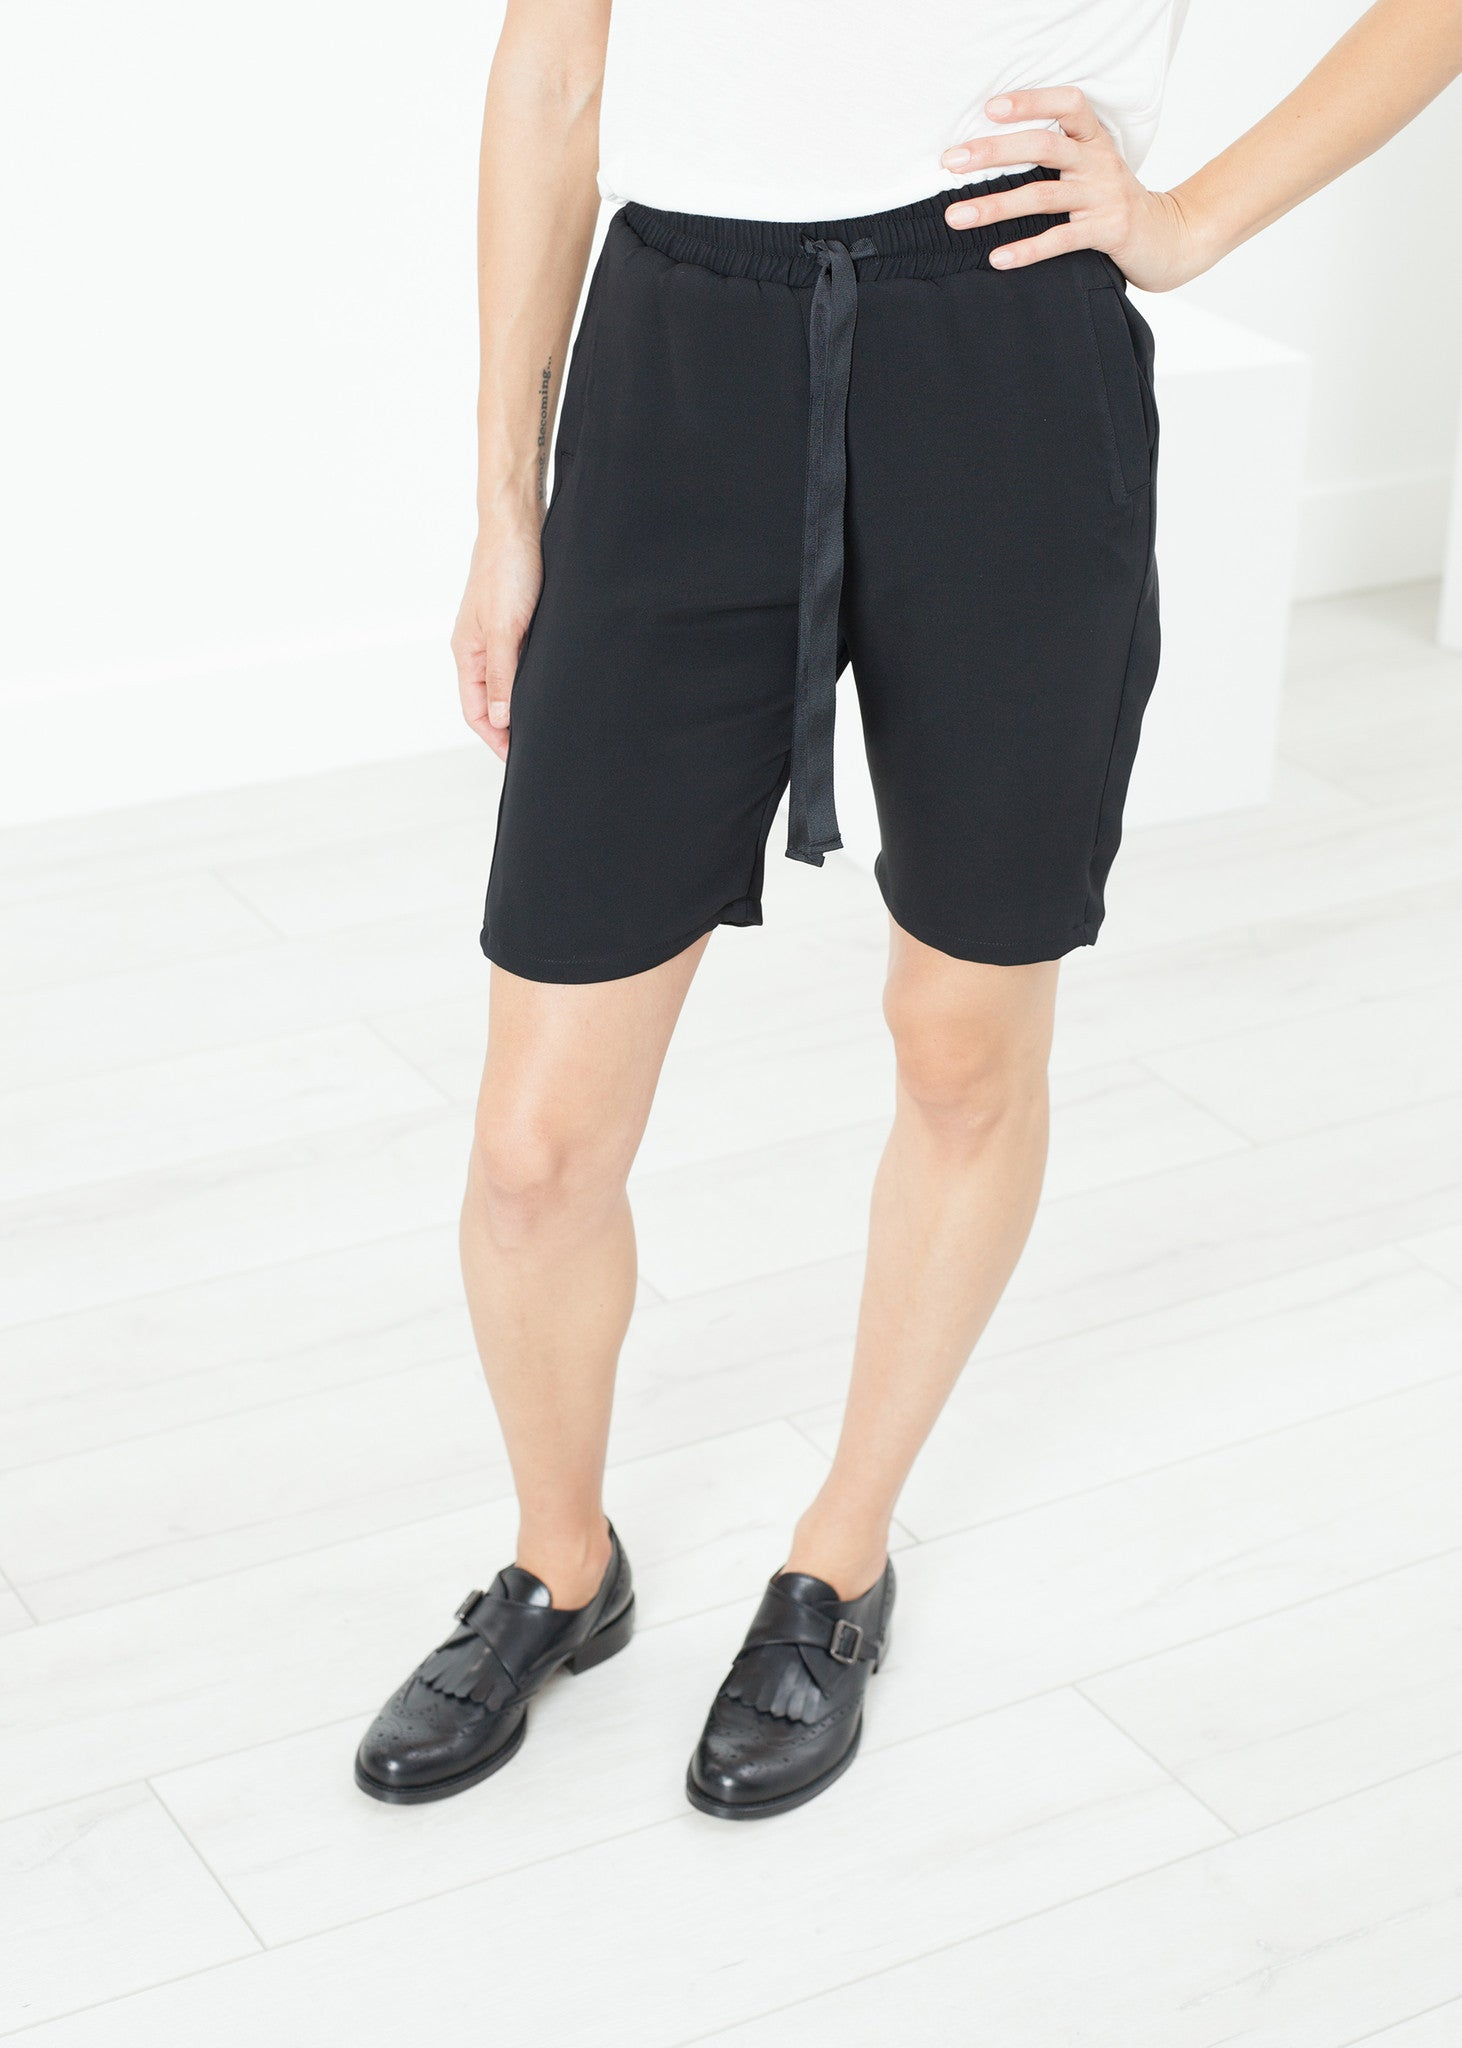 Nuit Shorts in Black